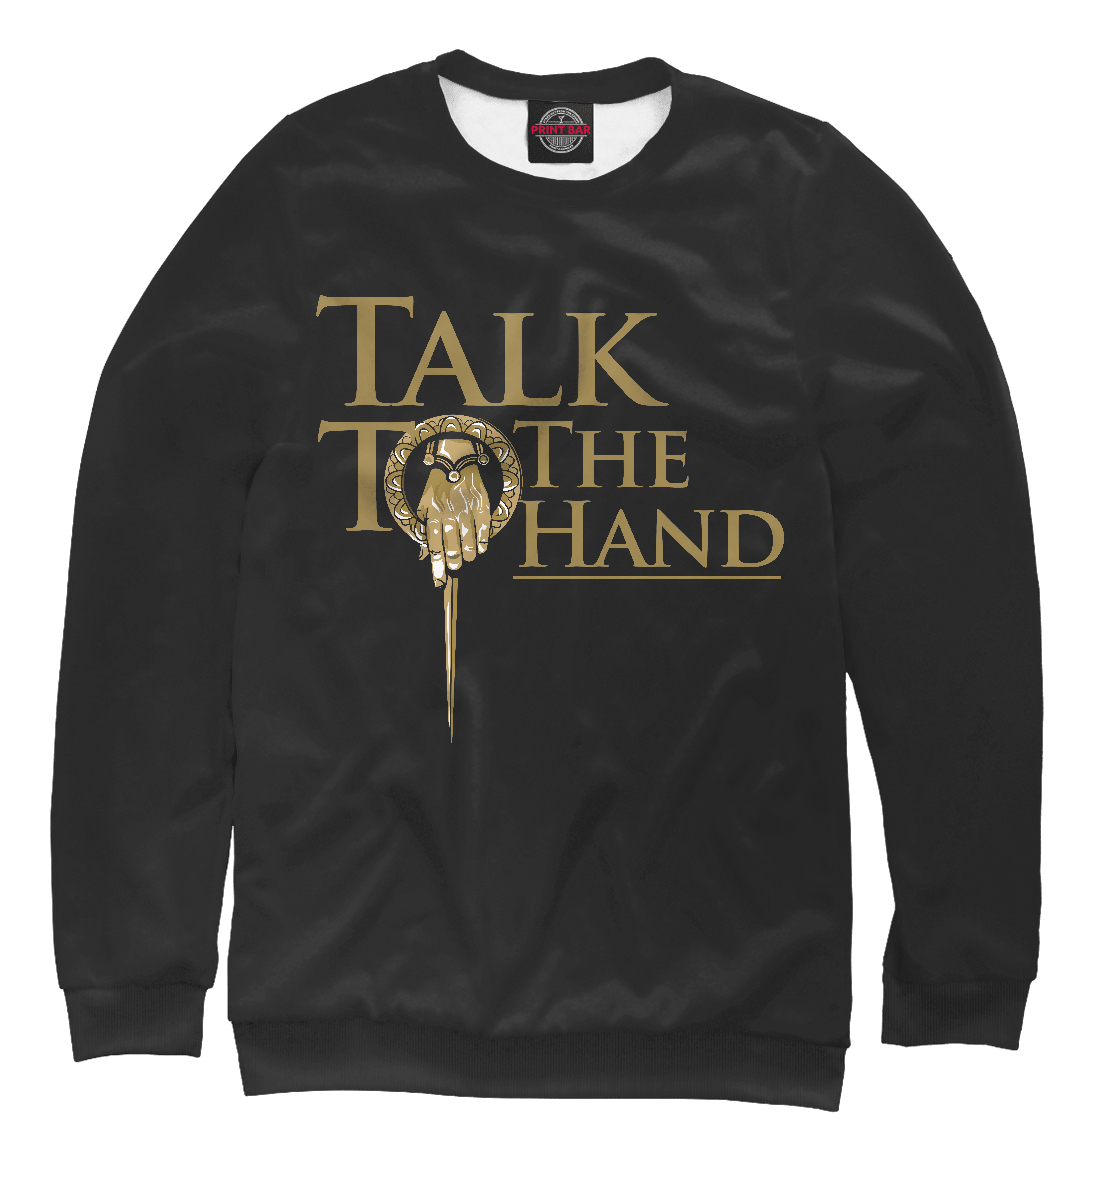 Talk to the Hand talk to strangers